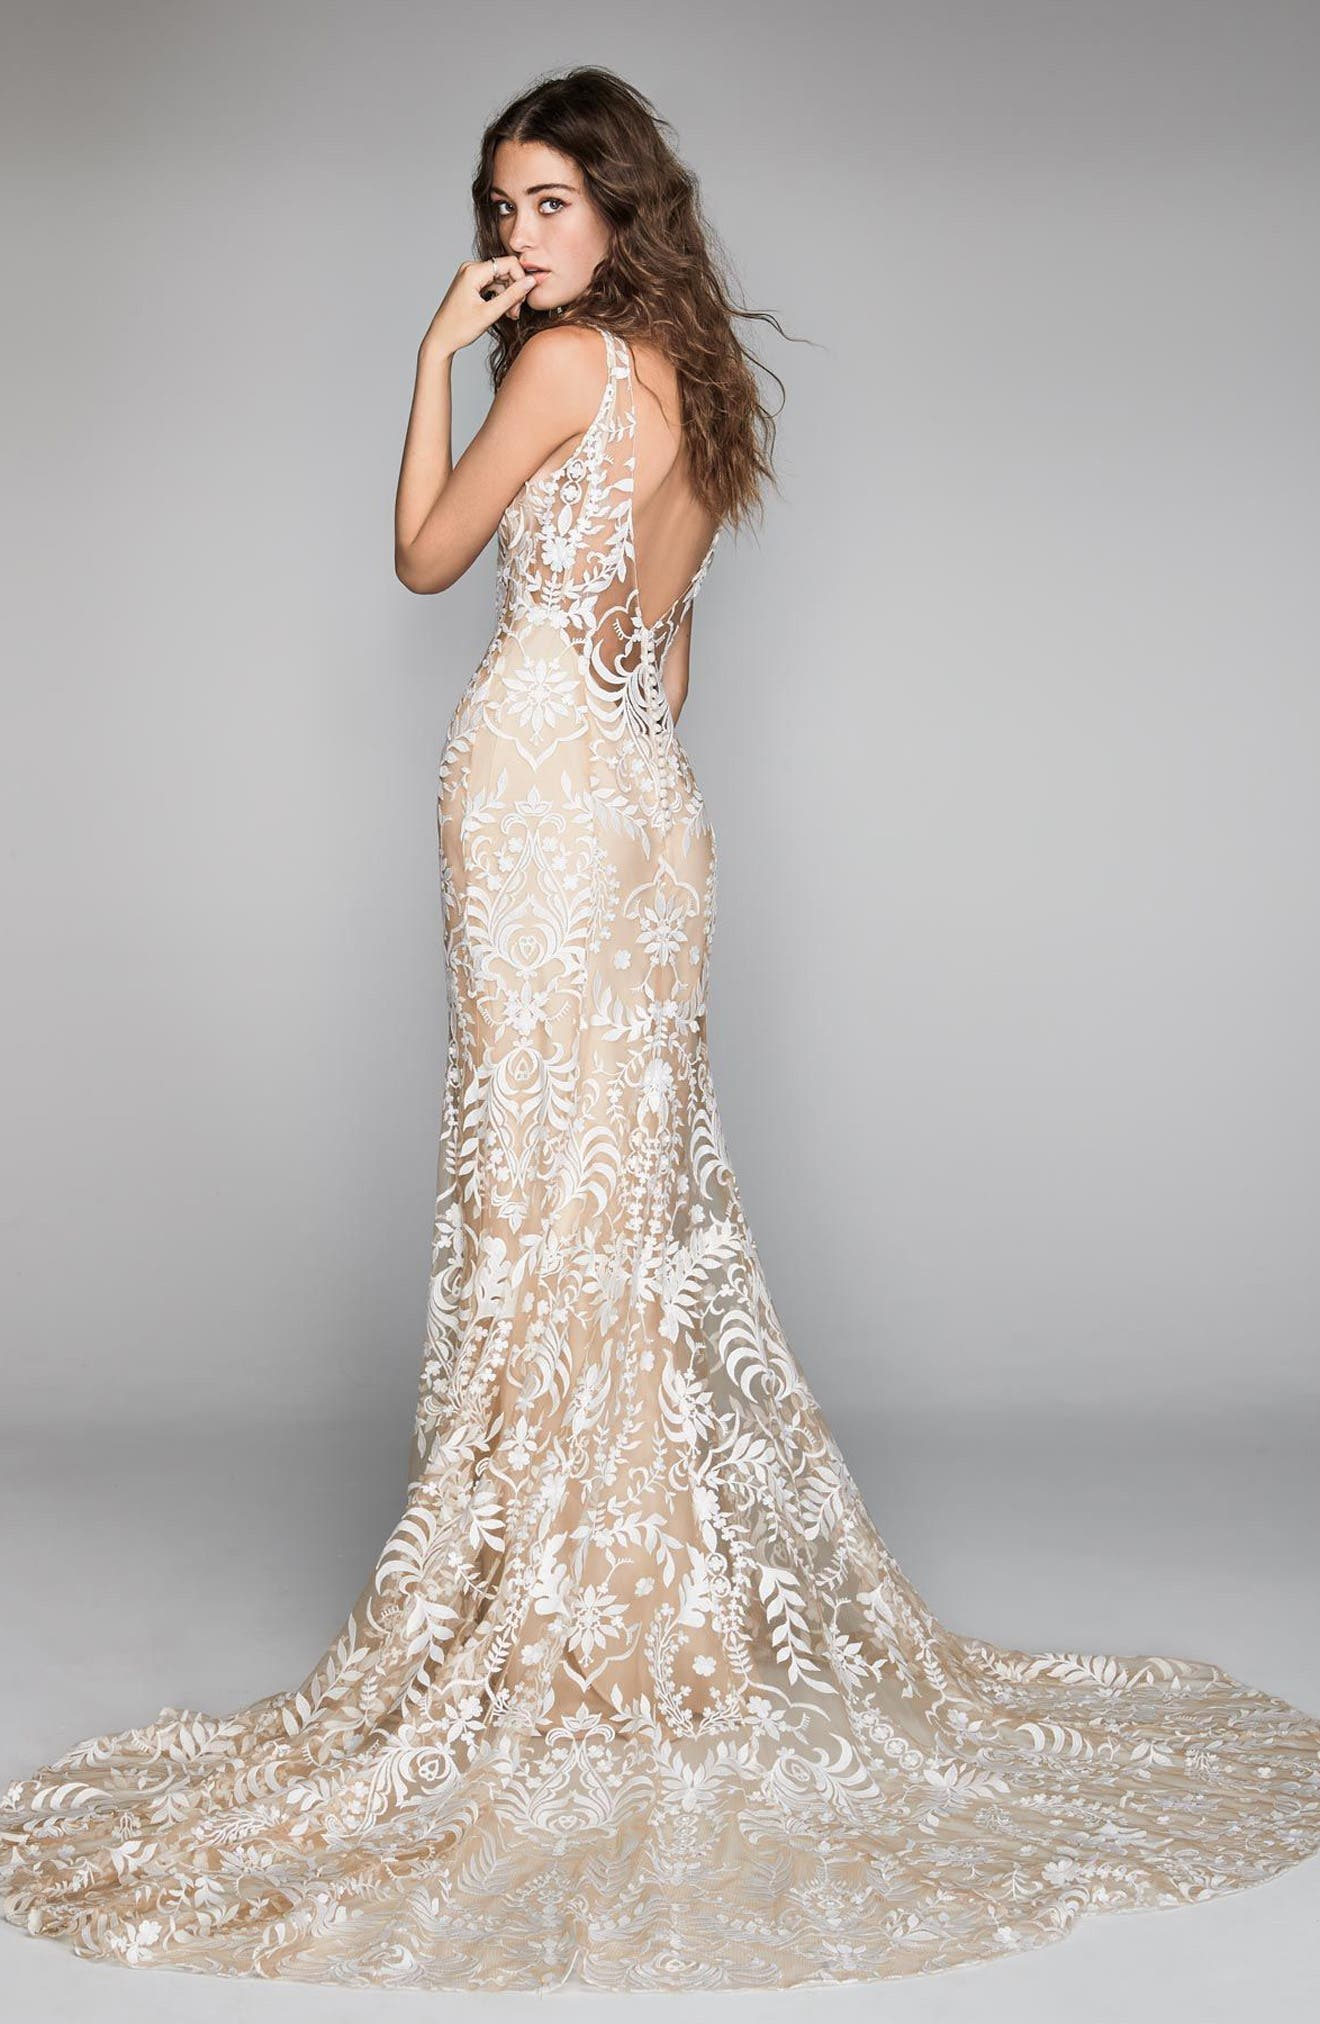 Corella Embroidered Lace & Charmeuse Mermaid Gown,                             Alternate thumbnail 2, color,                             NUDE/NUDE